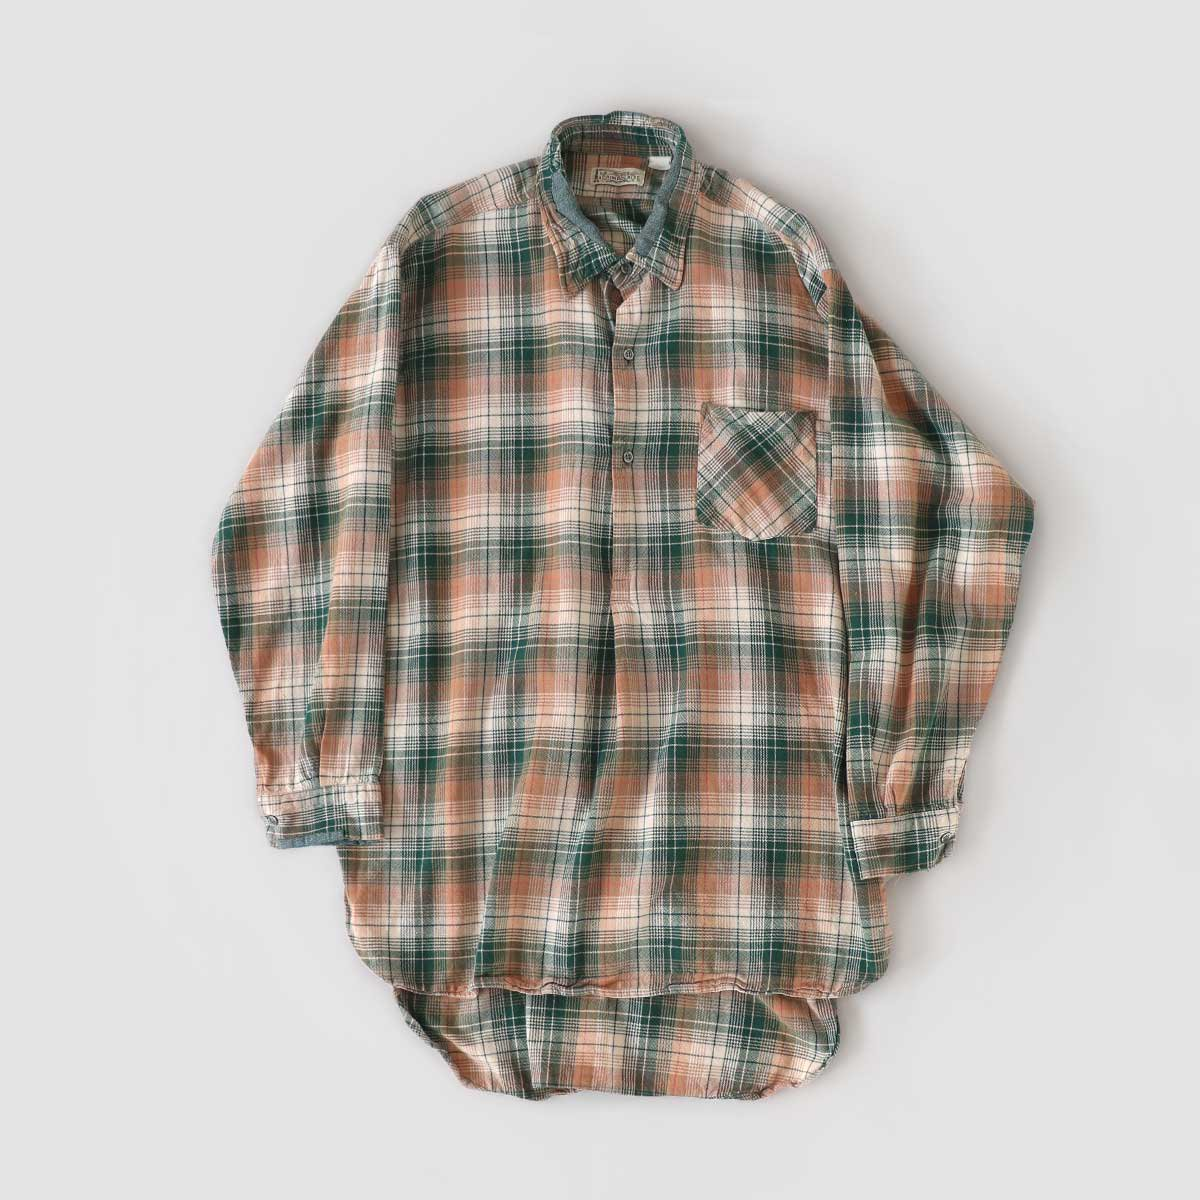 PULL OVER SHIRTS 詳細画像1